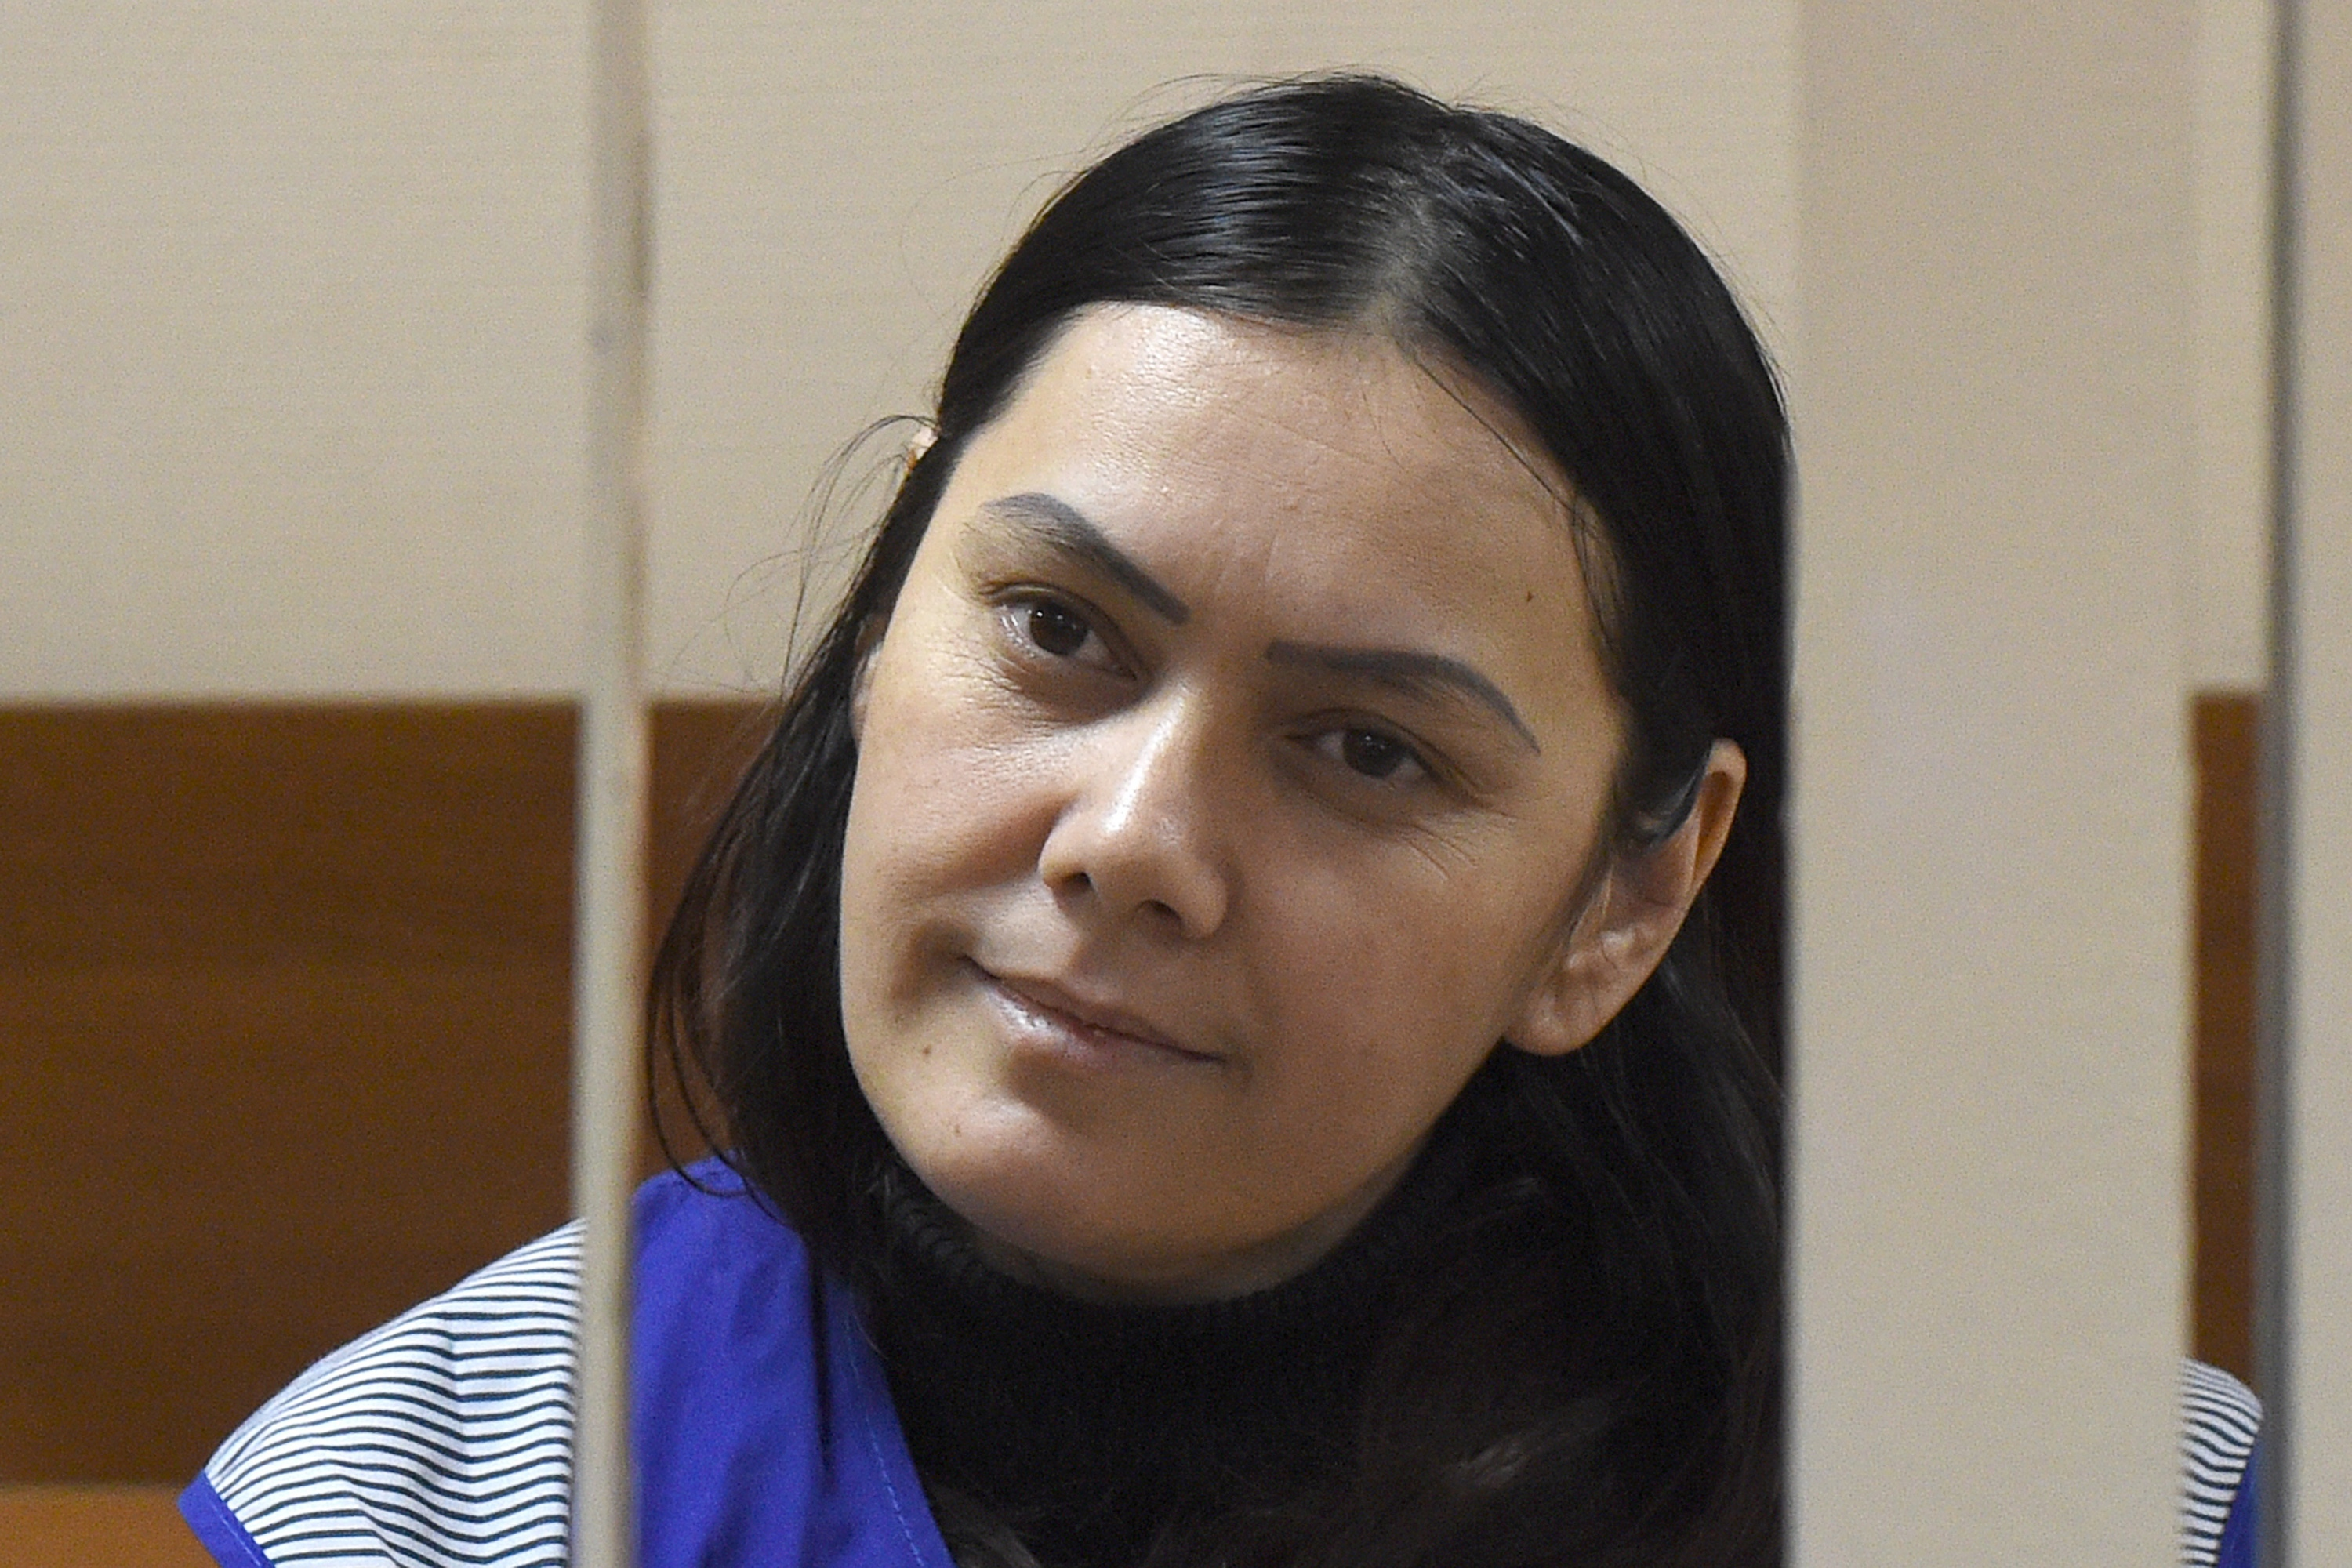 Gyulchekhra Bobokulova, a nanny suspected of killing a young girl in her care, looks out from a defendants' cage during a hearing at a court in Moscow, on March 2, 2016.  (Vasily Maximov/AFP/Getty)